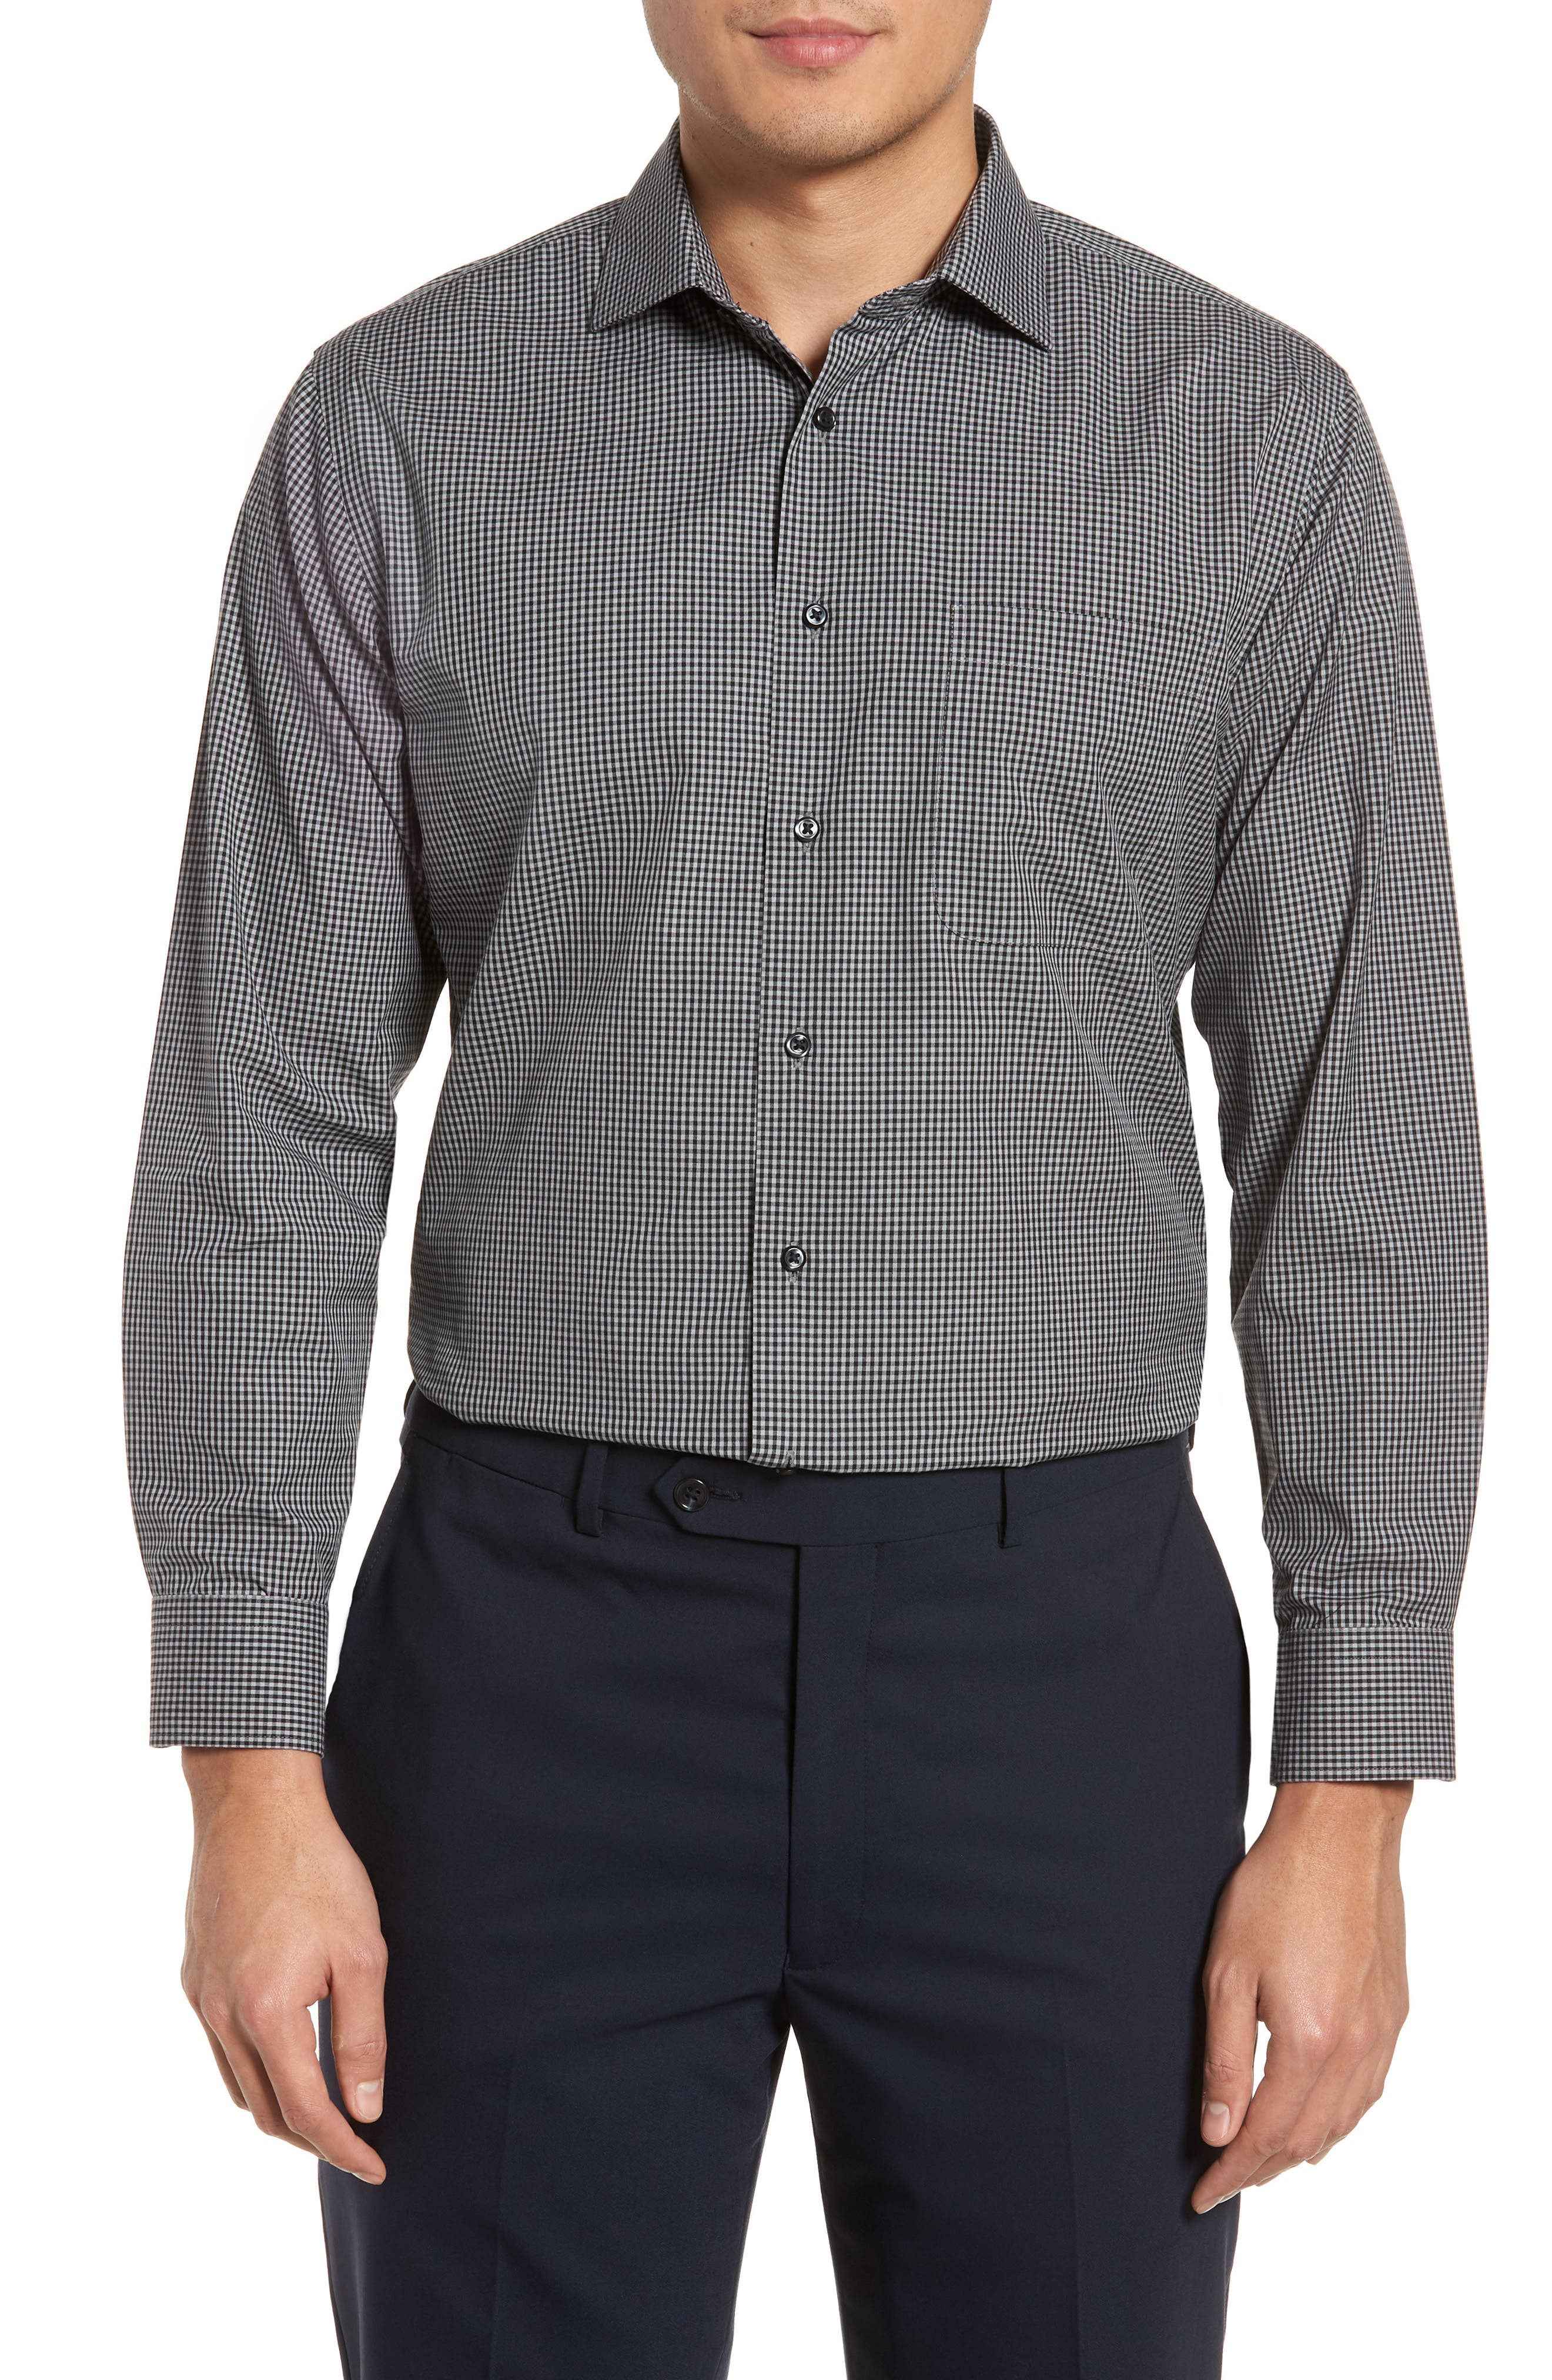 Smartcare<sup>™</sup> Trim Fit Check Dress Shirt,                             Main thumbnail 1, color,                             001